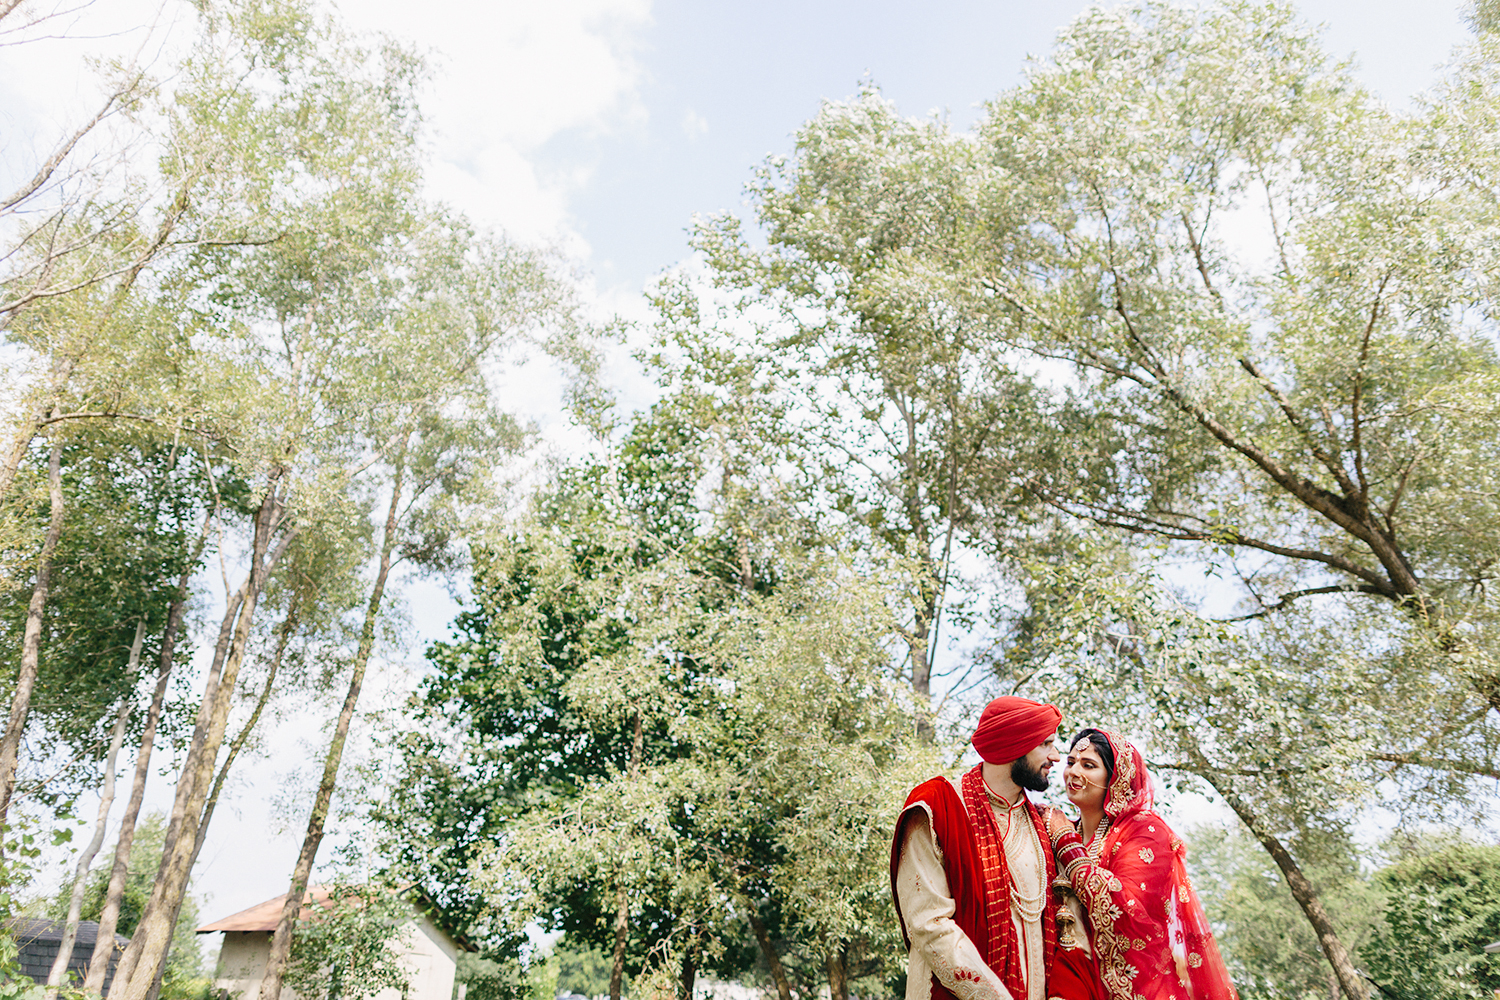 Toronto's-Best-Film-Wedding-Photographers-Multicultural-wedding-specialty-ontario-port-perry-candid-documentary-film-analog-photography-120-35mm-film-portraits-of-sikh-bride-and-groom-in-the-trees-epic-cinematic-artistic.jpg